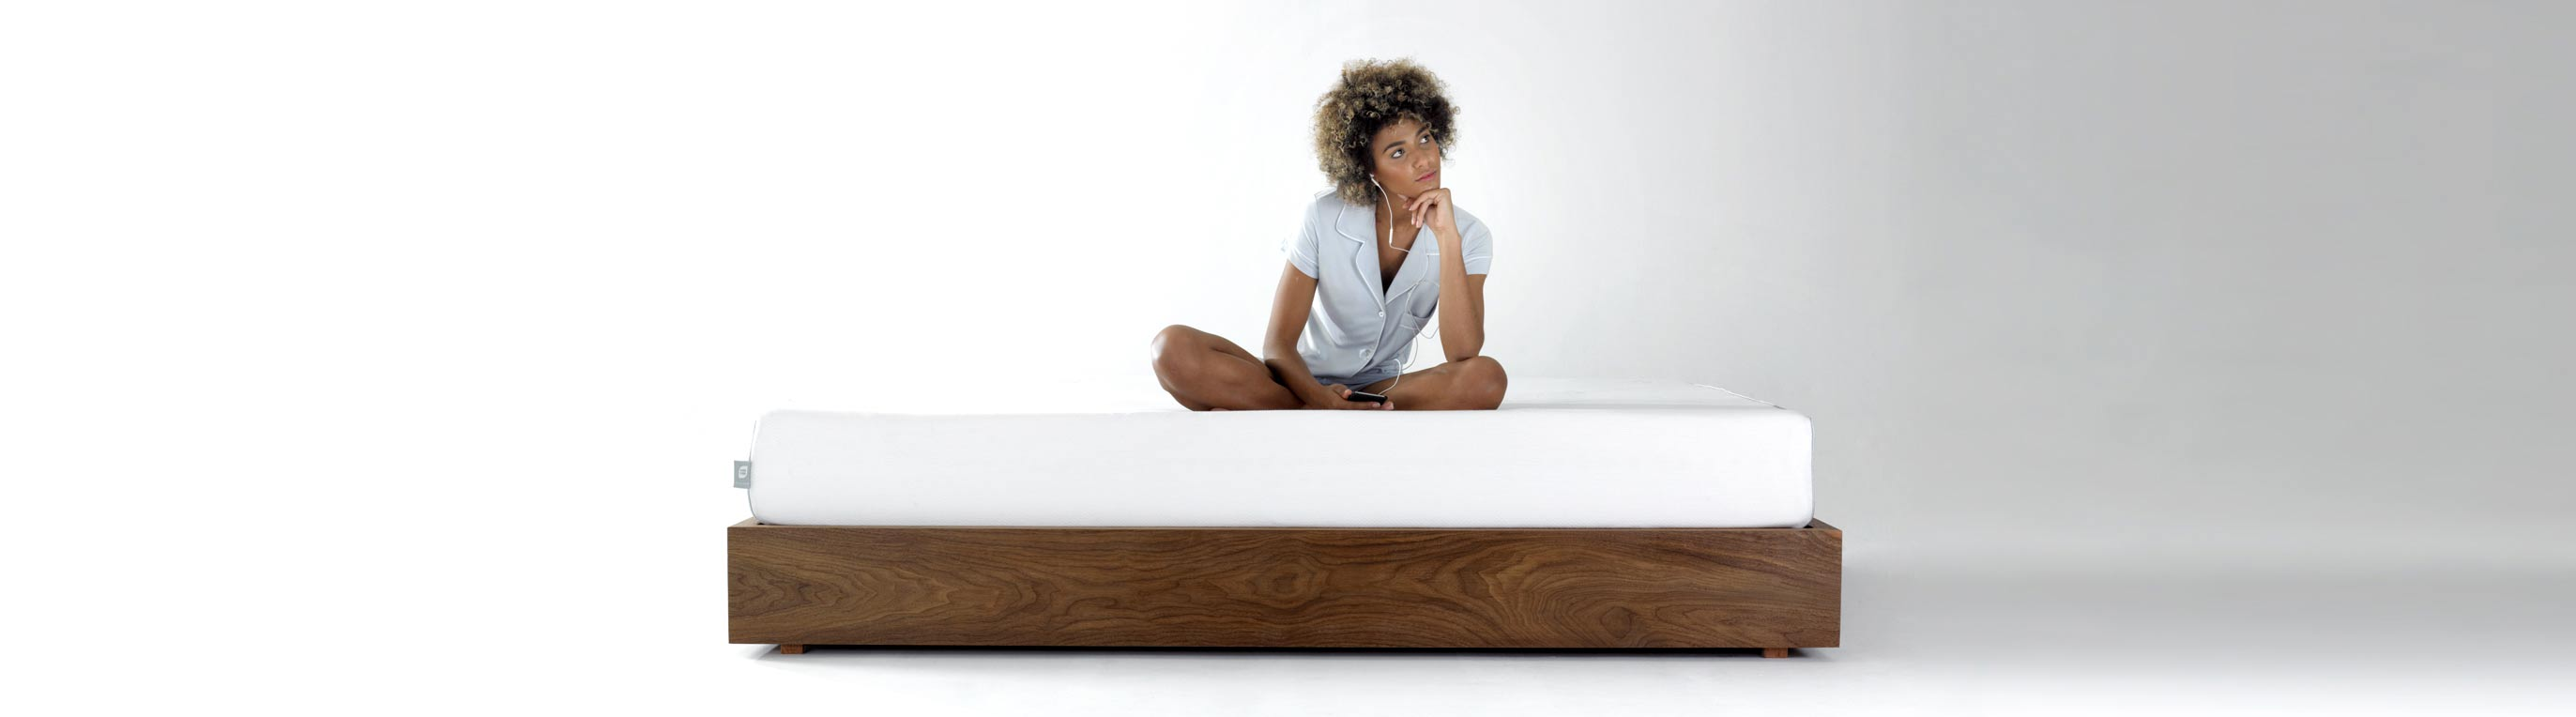 The Ergoflex 5G Memory Foam Mattress